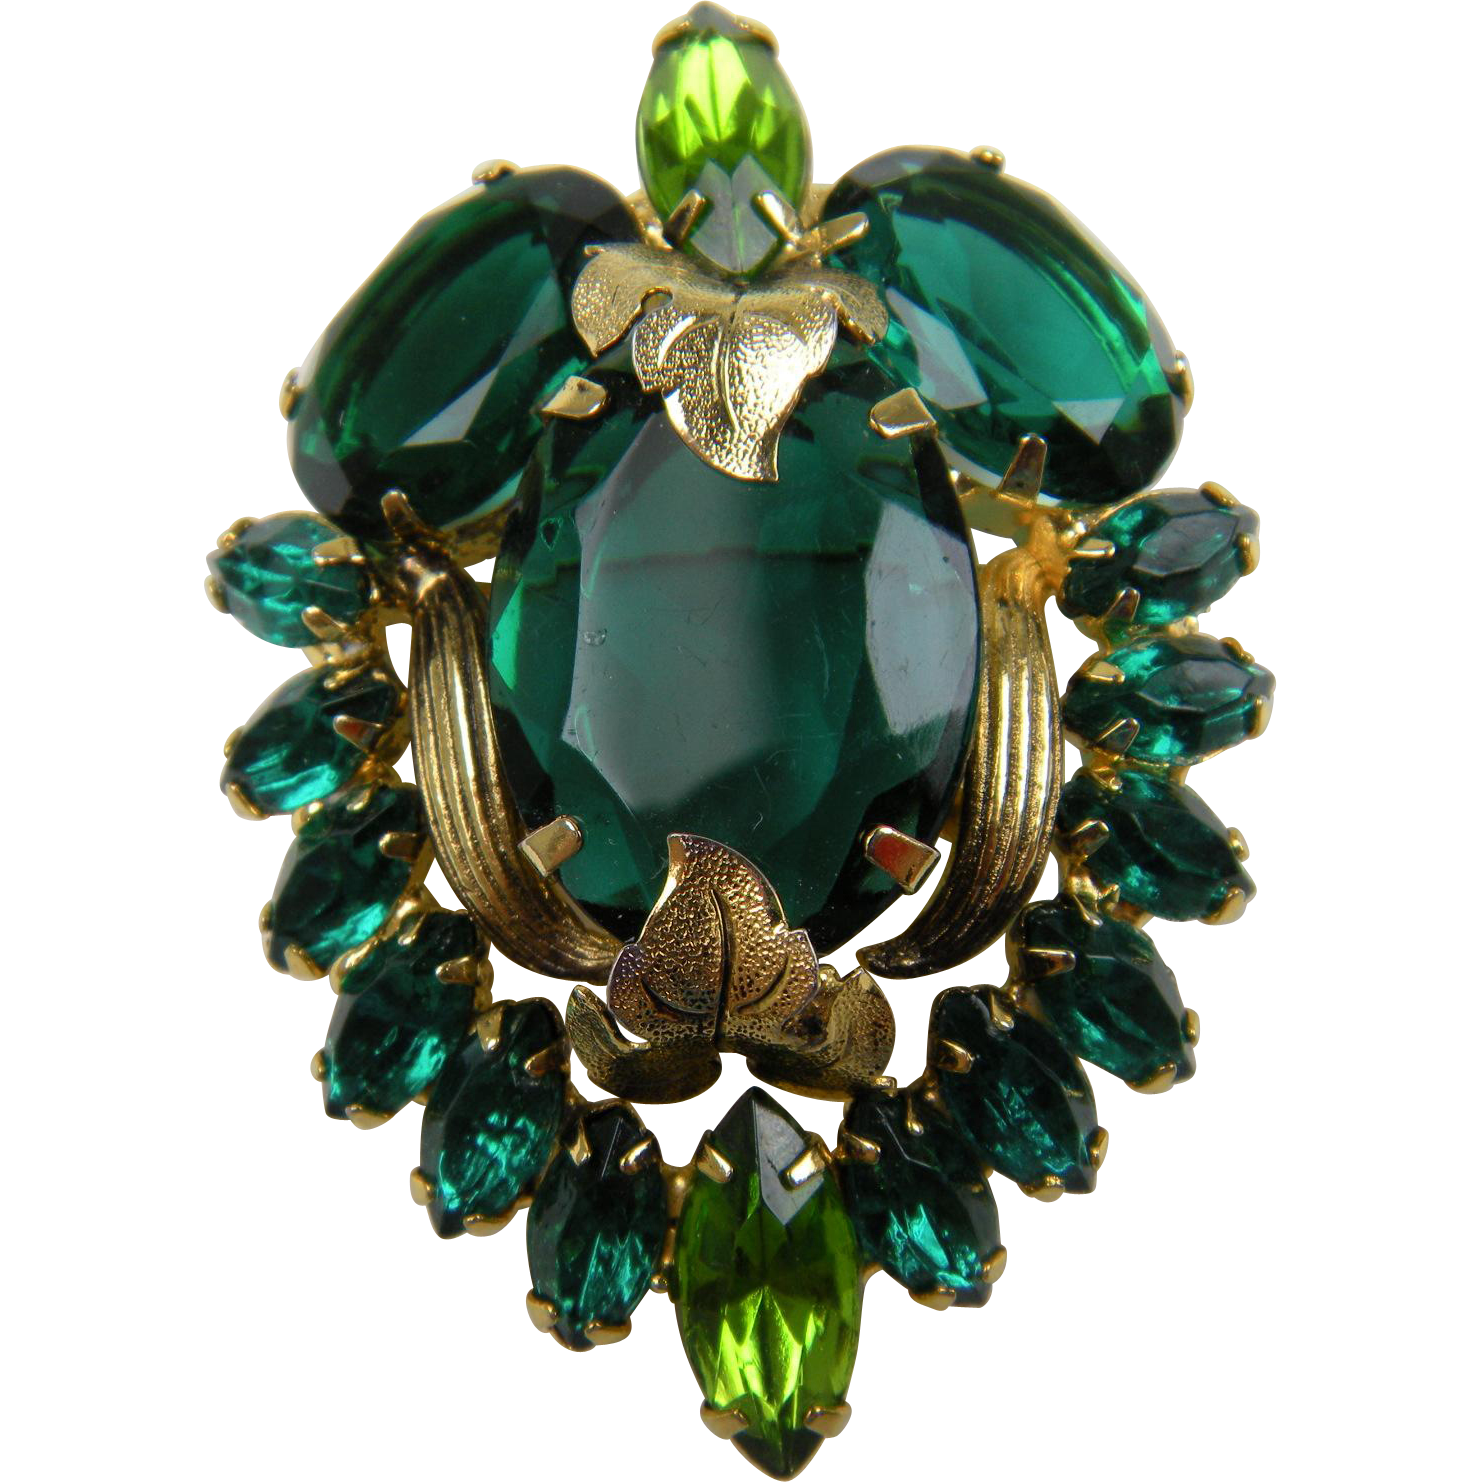 Remarkable DeLizza and Elster (D&E) Juliana Brooch/Pendant